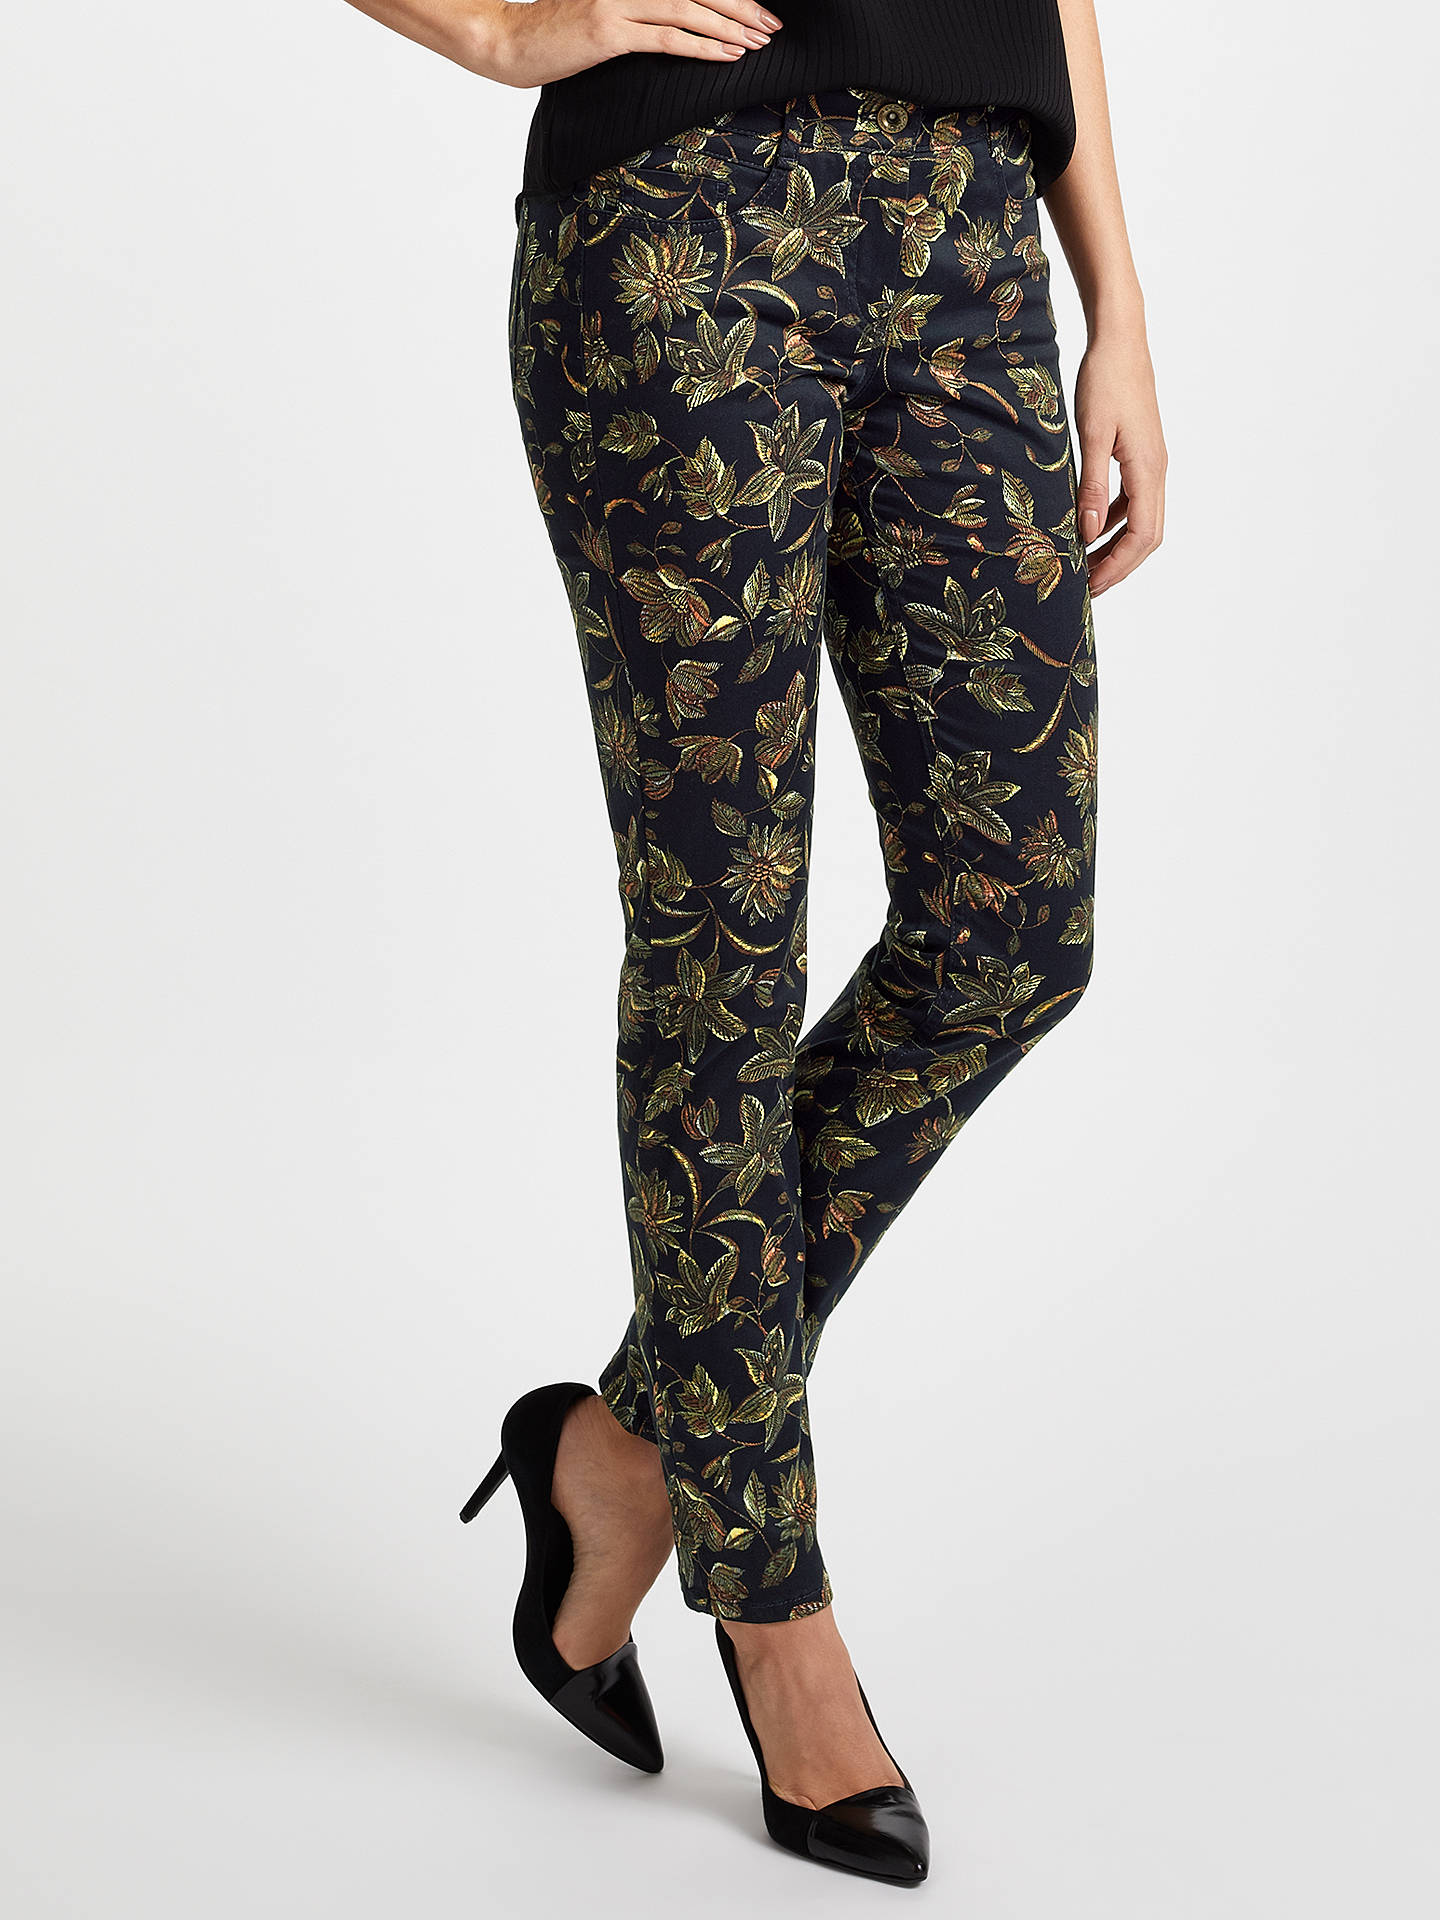 21882e39297 Buy Gardeur Zuri Slim Fit Printed Jeans, Black/Multi, 10 Online at  johnlewis ...